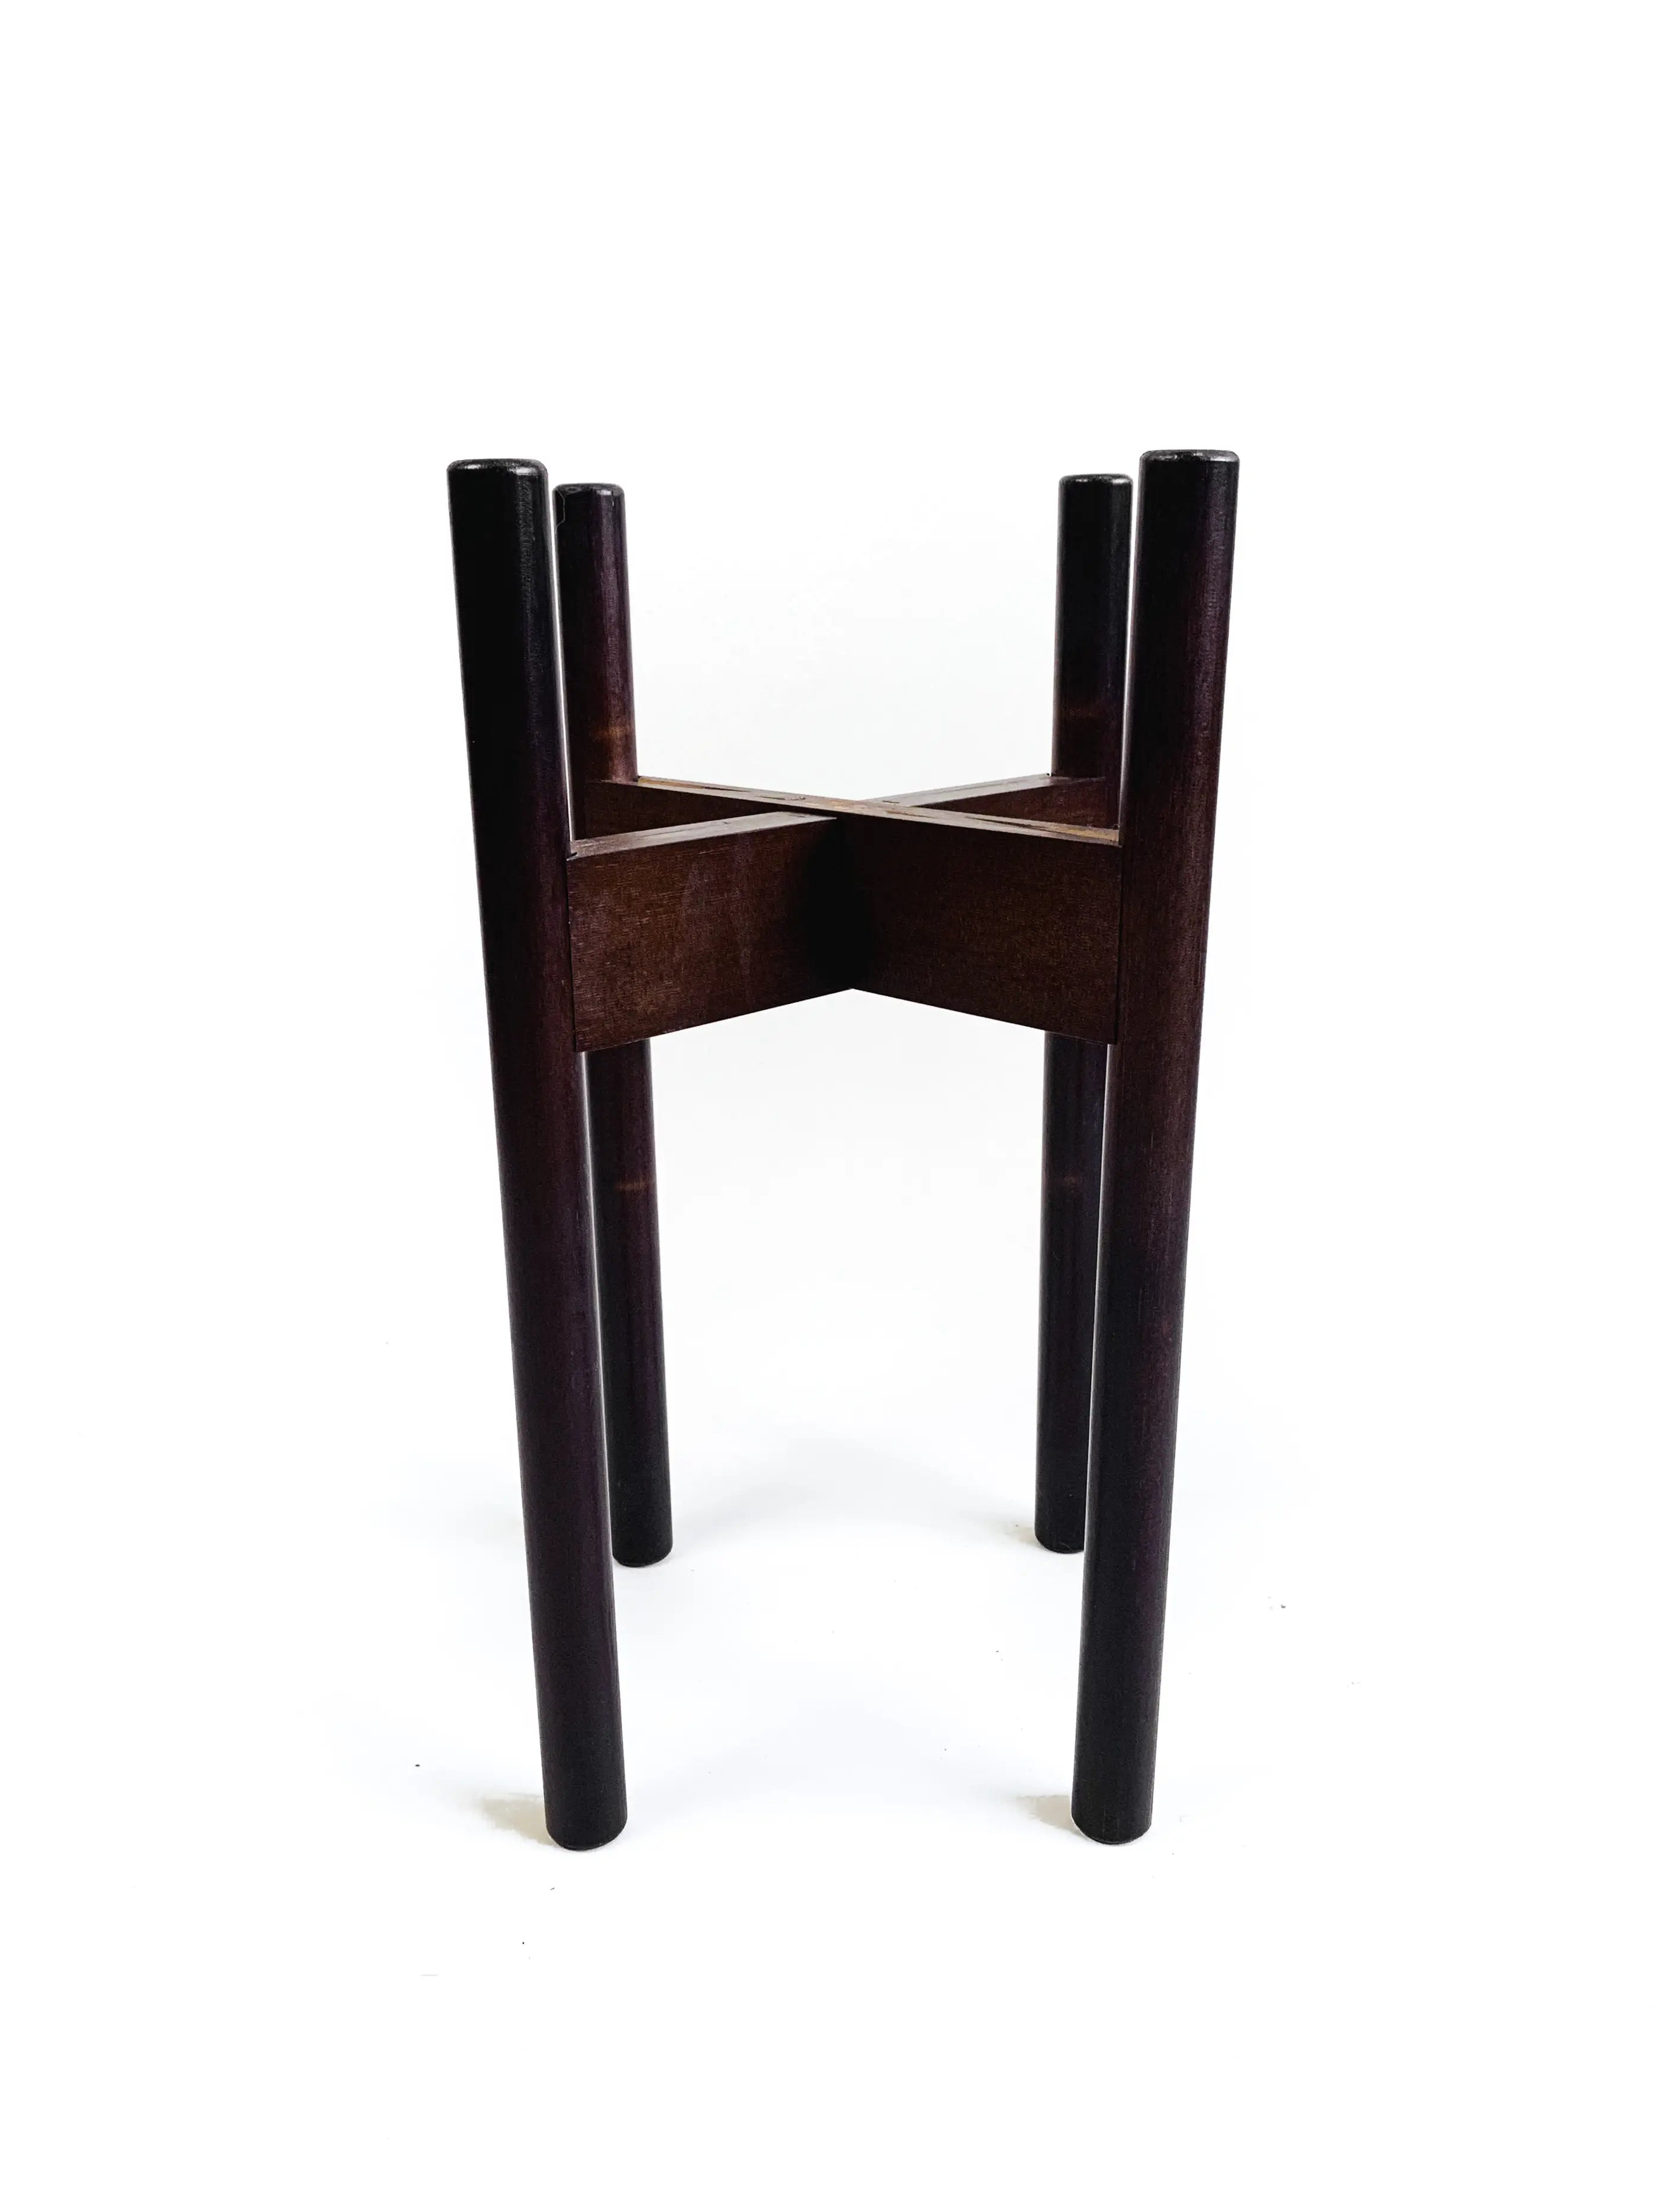 "Decluttered Top Level 8-12"" Adjustable Plant Stand in Dark Brown"